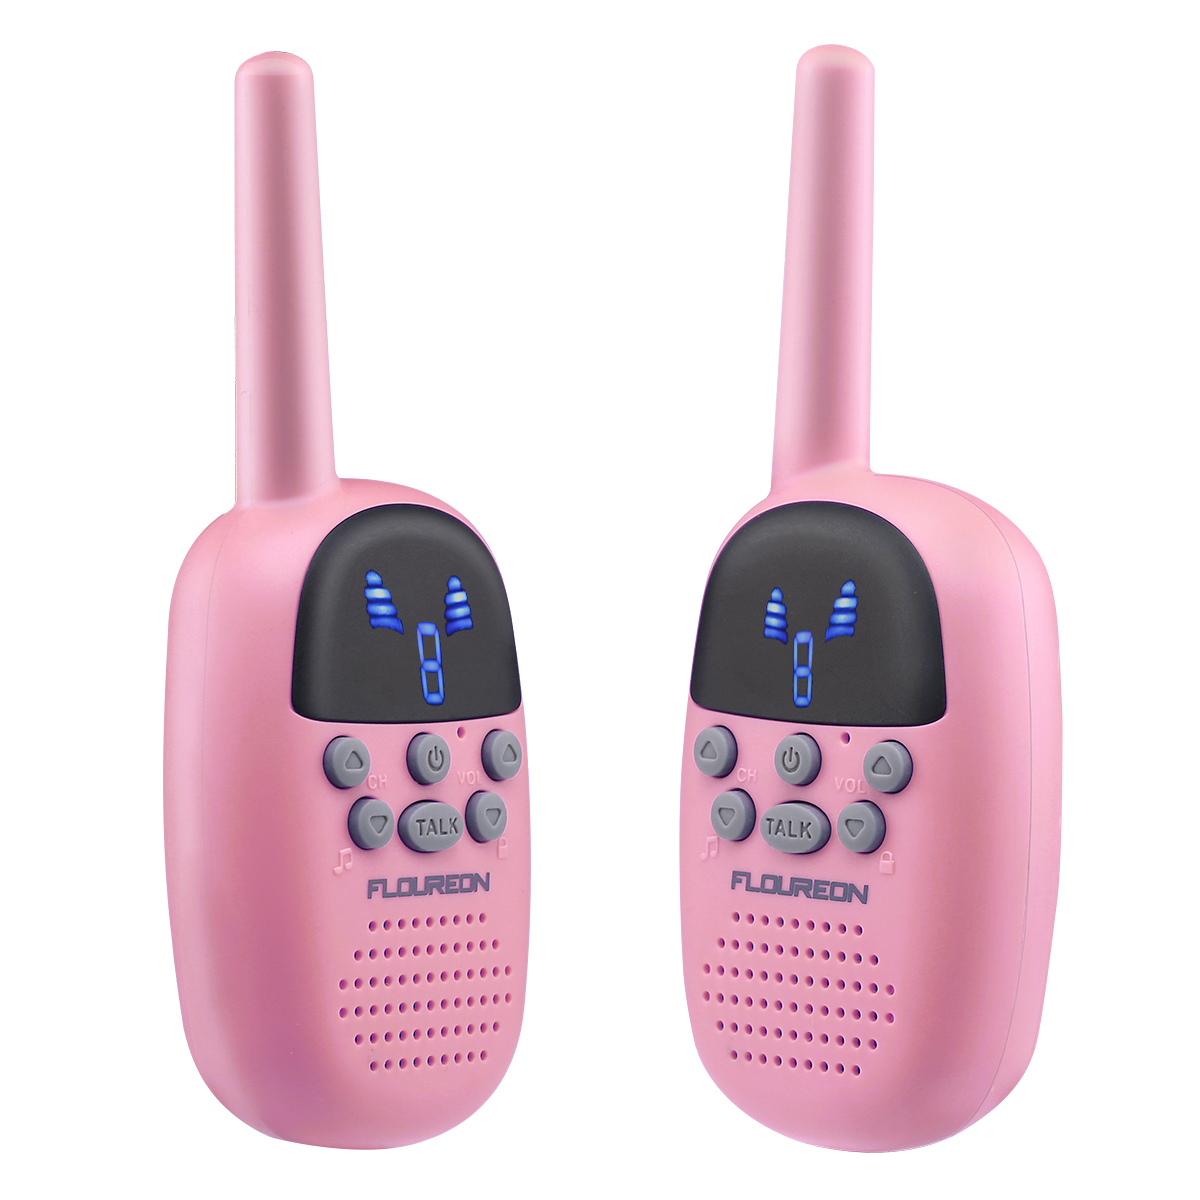 Floureon Walkie Talkies for Kids Two-Way Radios 22 Channels FRS/GMRS 462/467MHZ Portable Handheld Mini Kids Walkie Talkies Long Range 3.3 Miles Carry Charger (Pink, 2 Pack)